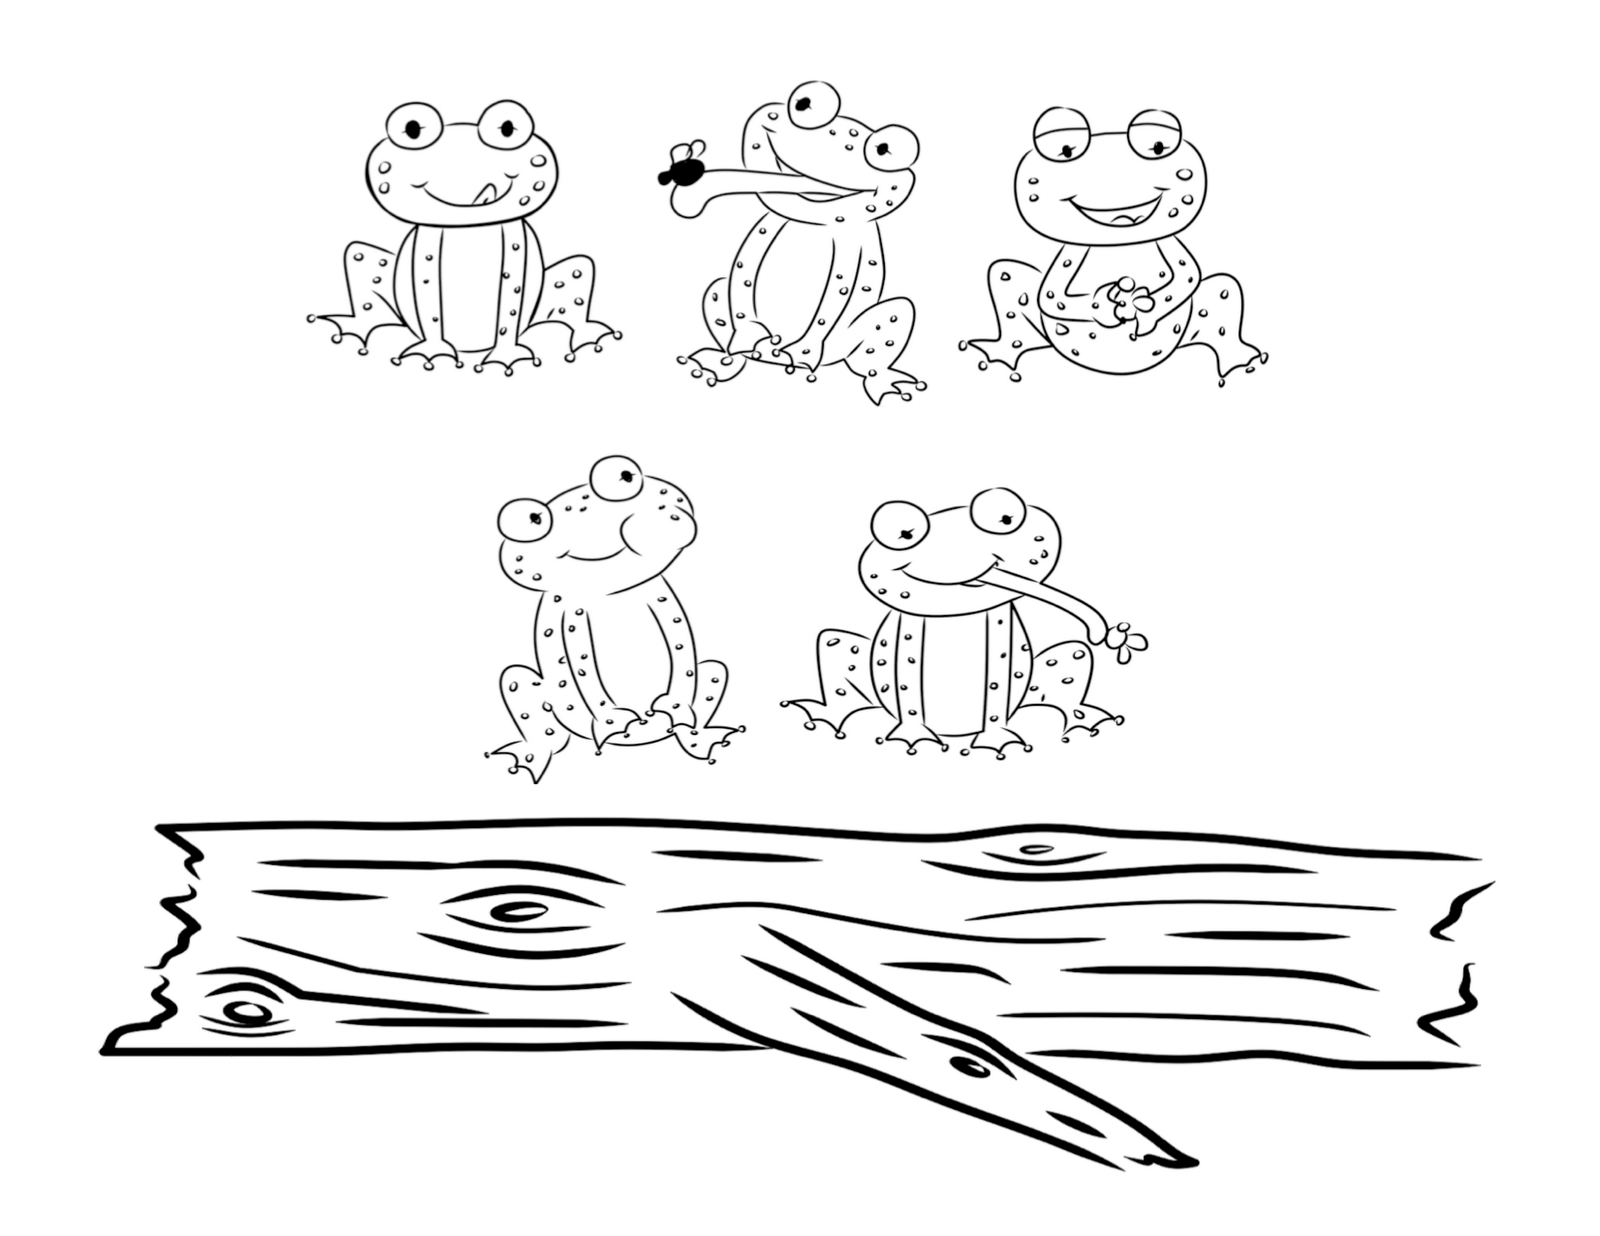 bust out your crayons: Five Little Speckled Frogs | Clever Stuff ...